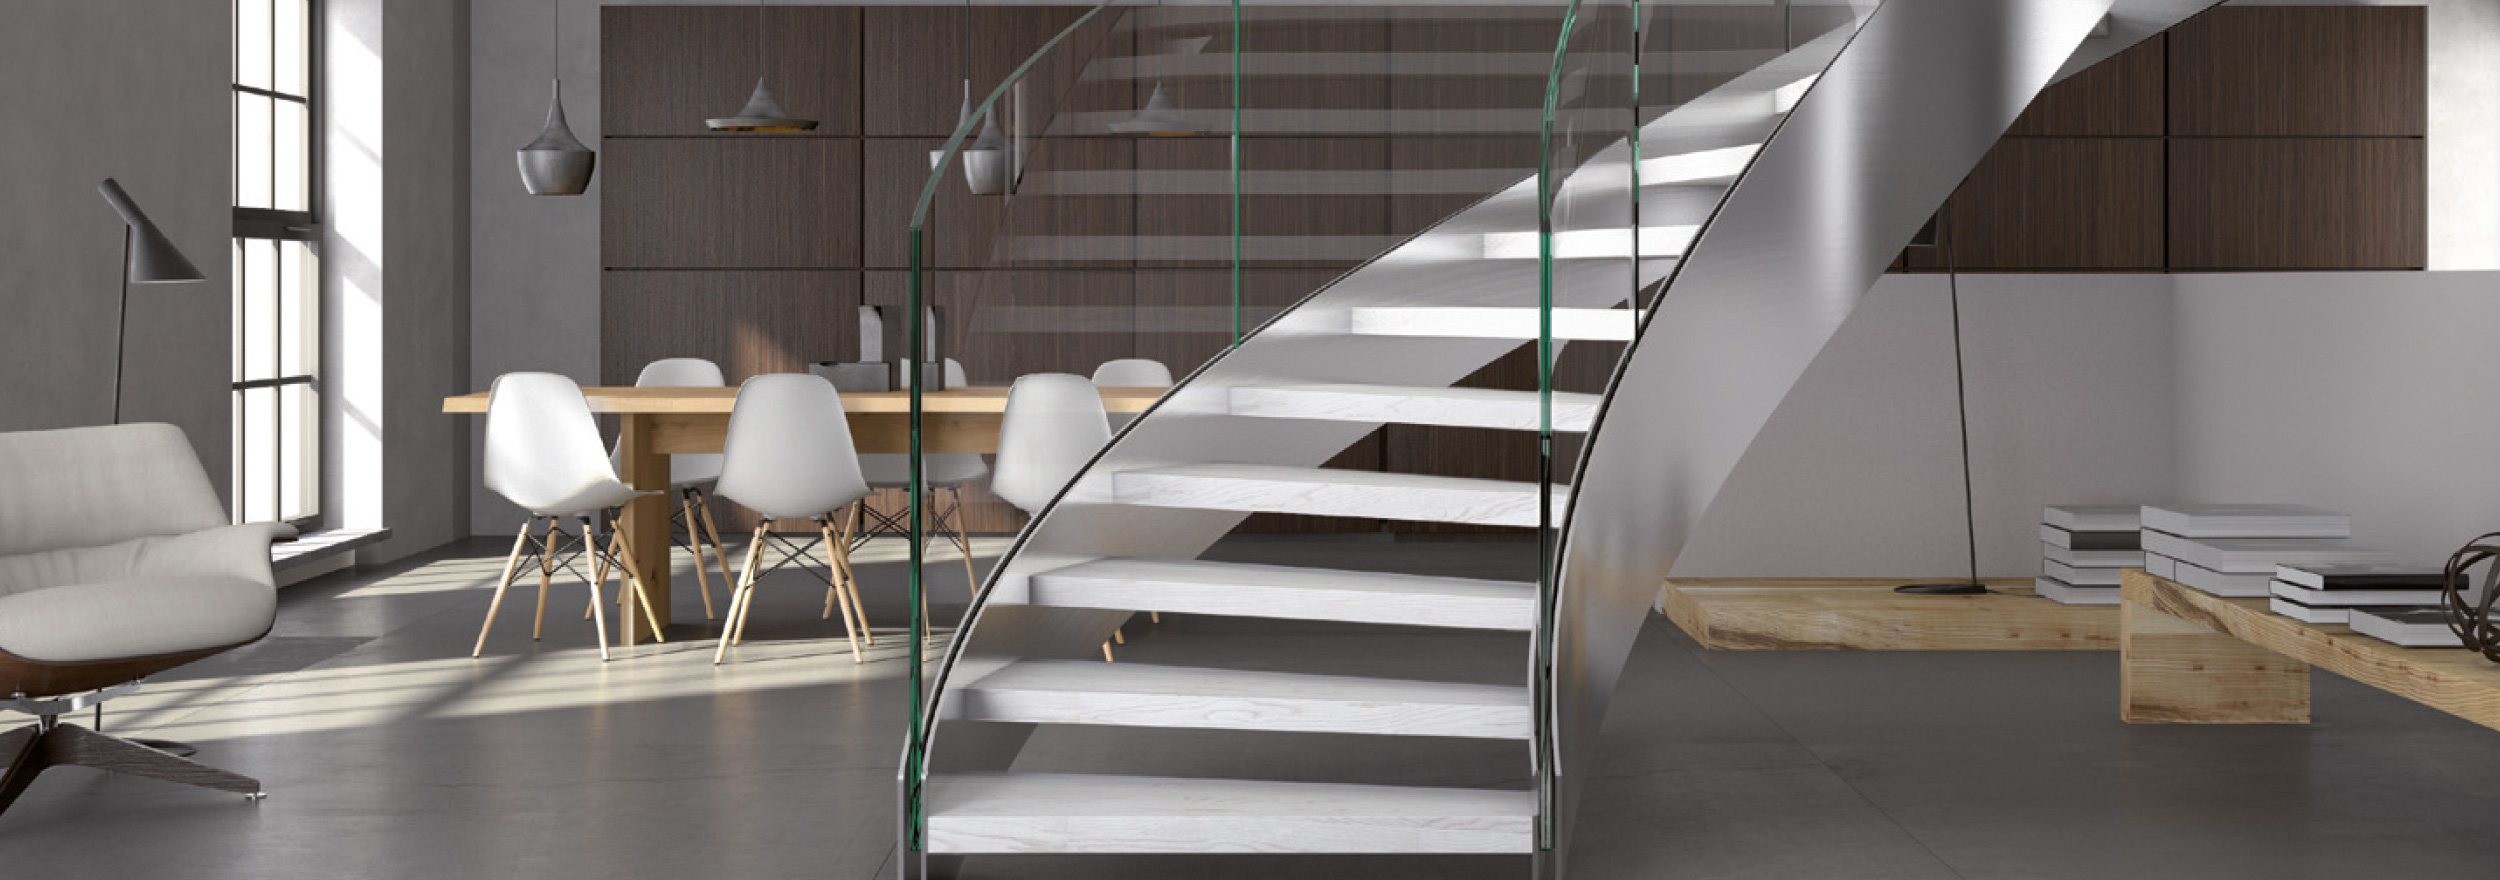 Home Escalier contemporain | Domologis